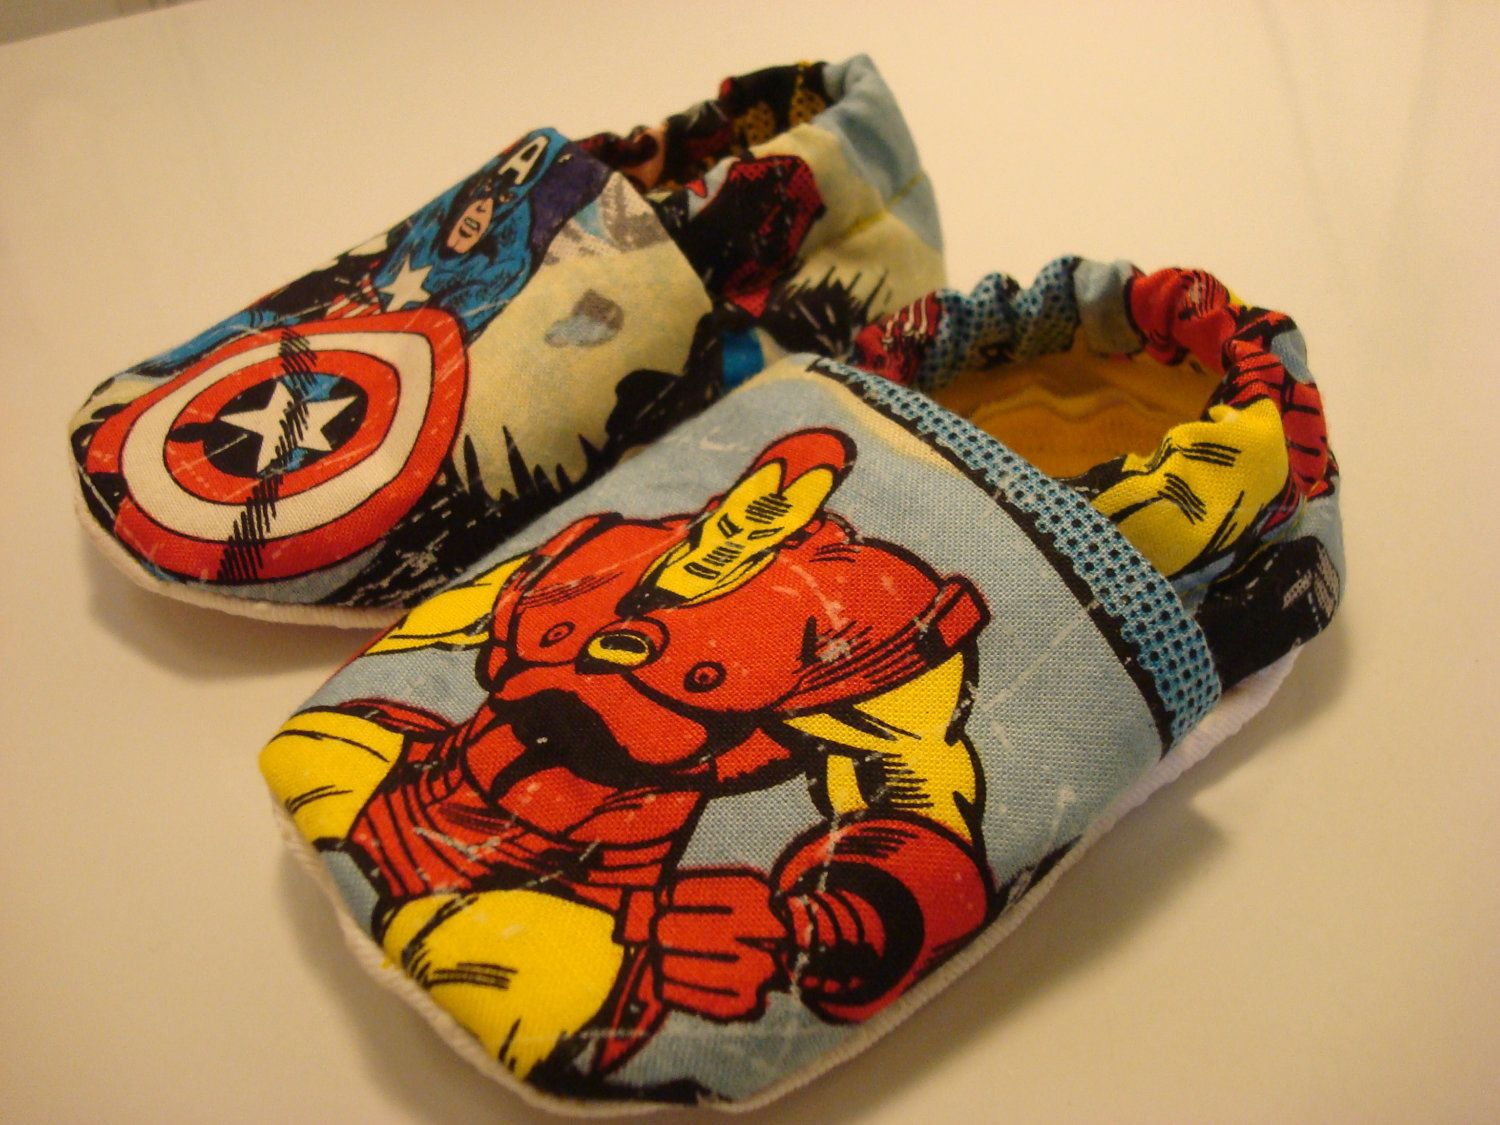 0aef8f9b41b68 THE+AVENGERS+baby+shoes+pick+from+Iron+Man+SpiderMan+by+haddybug,+$ ...